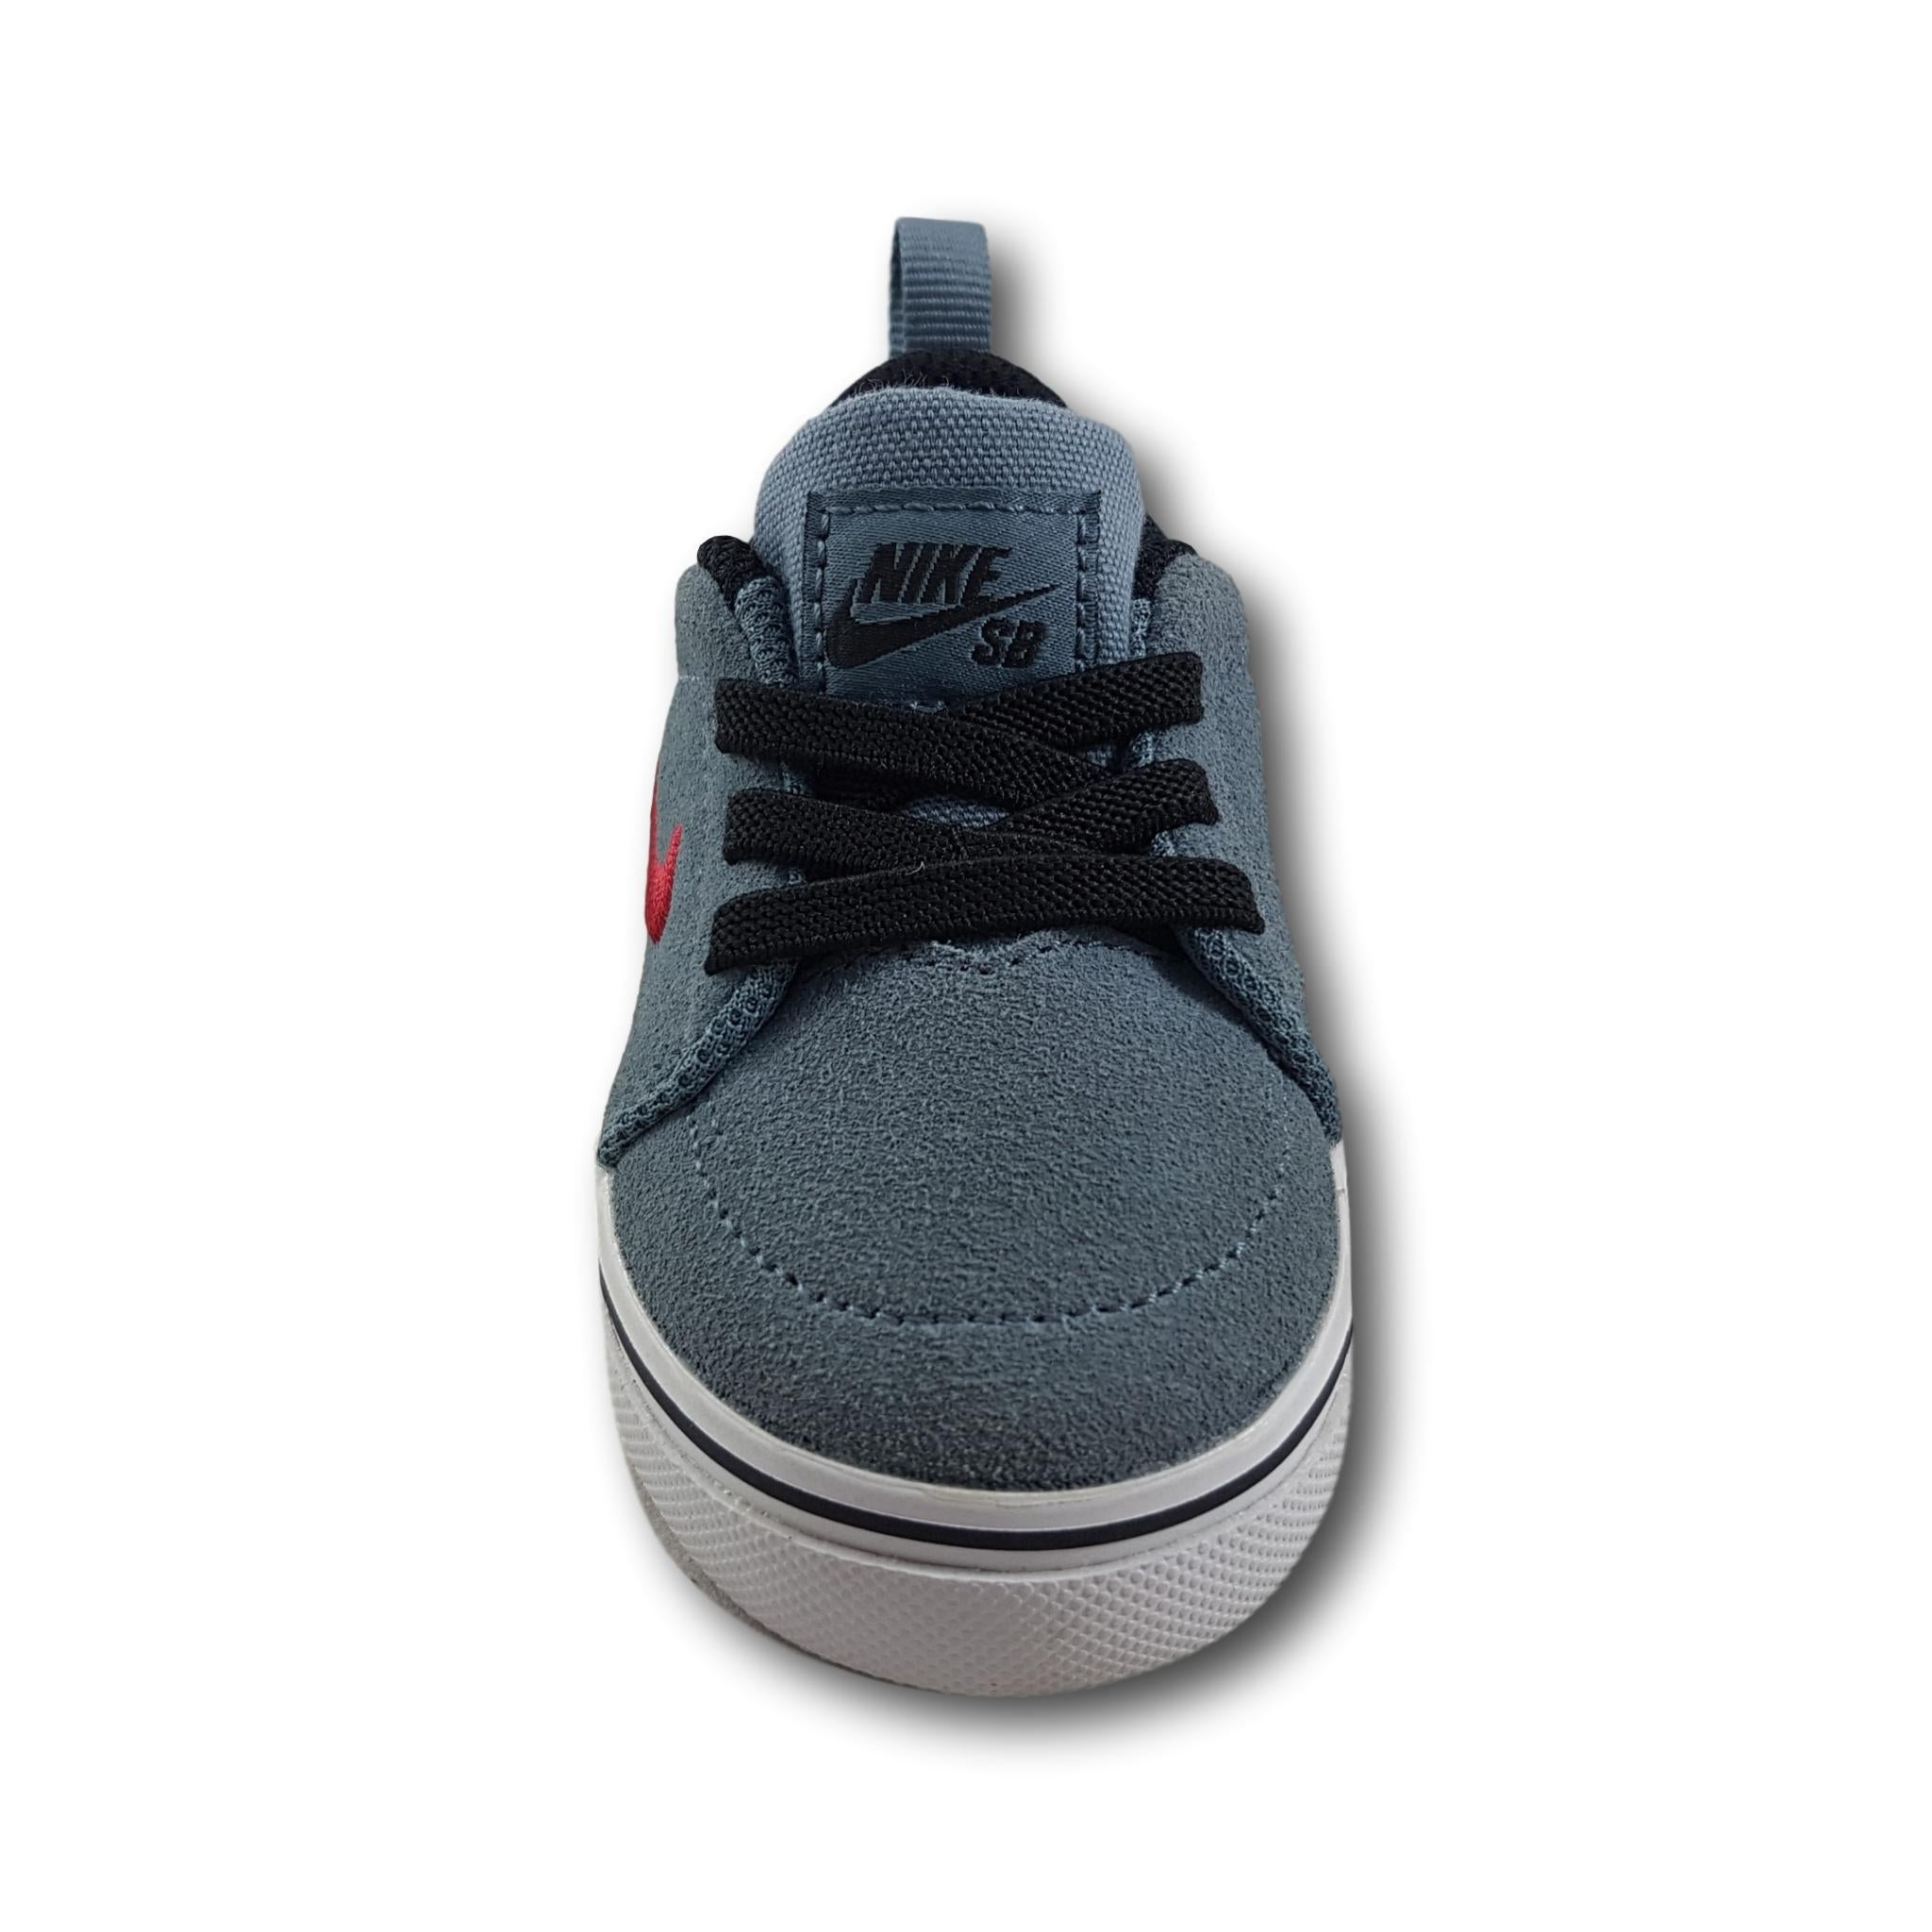 Nike SB Satire Toddler Blue Graphite/Gym Red